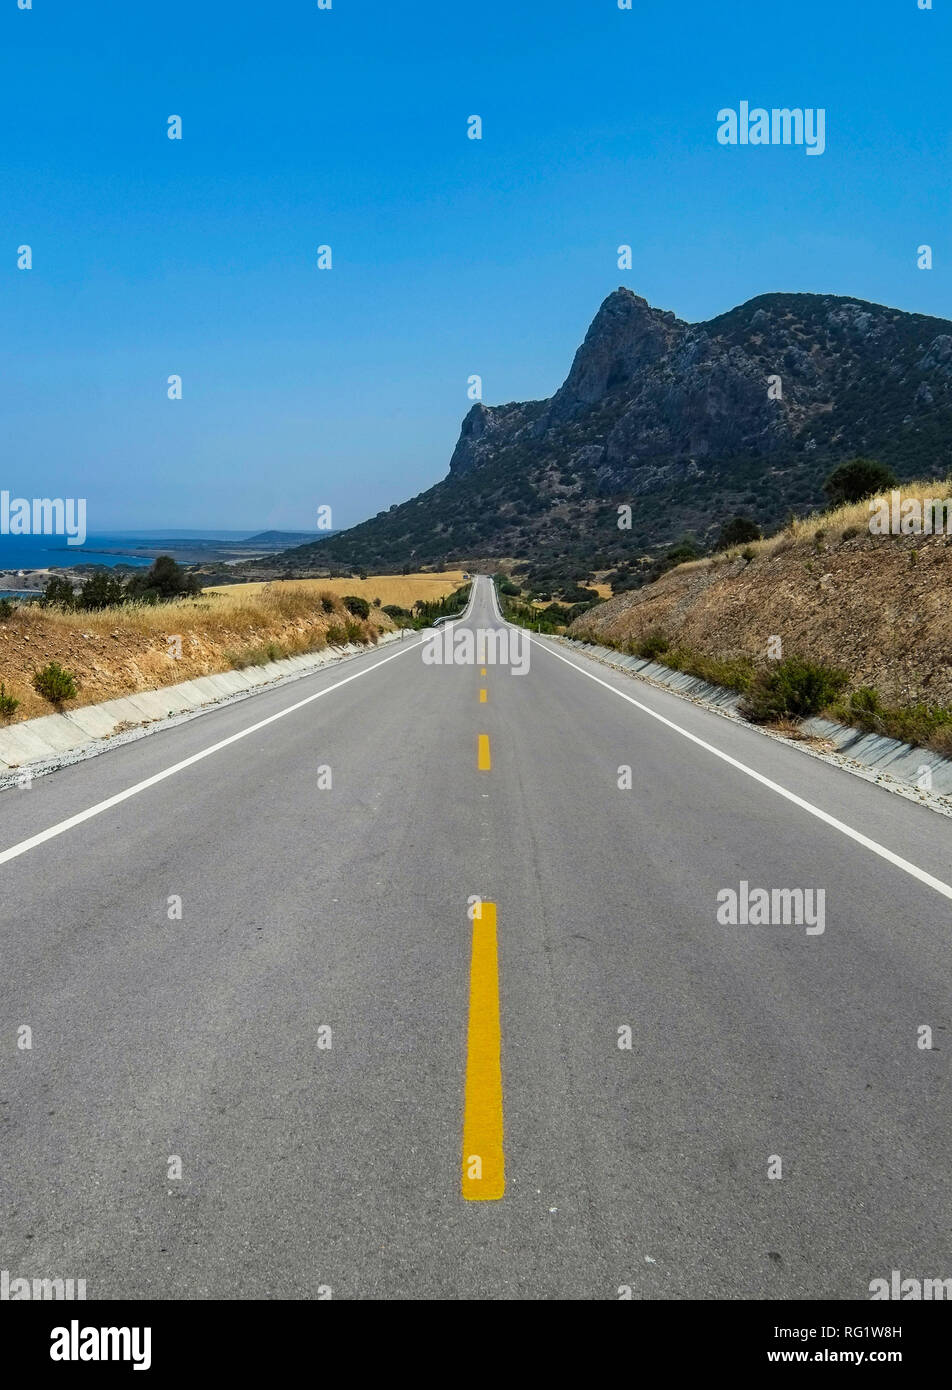 The main road looking east from Kyrenia to the Kapas peninsula, Northern Cyprus. - Stock Image